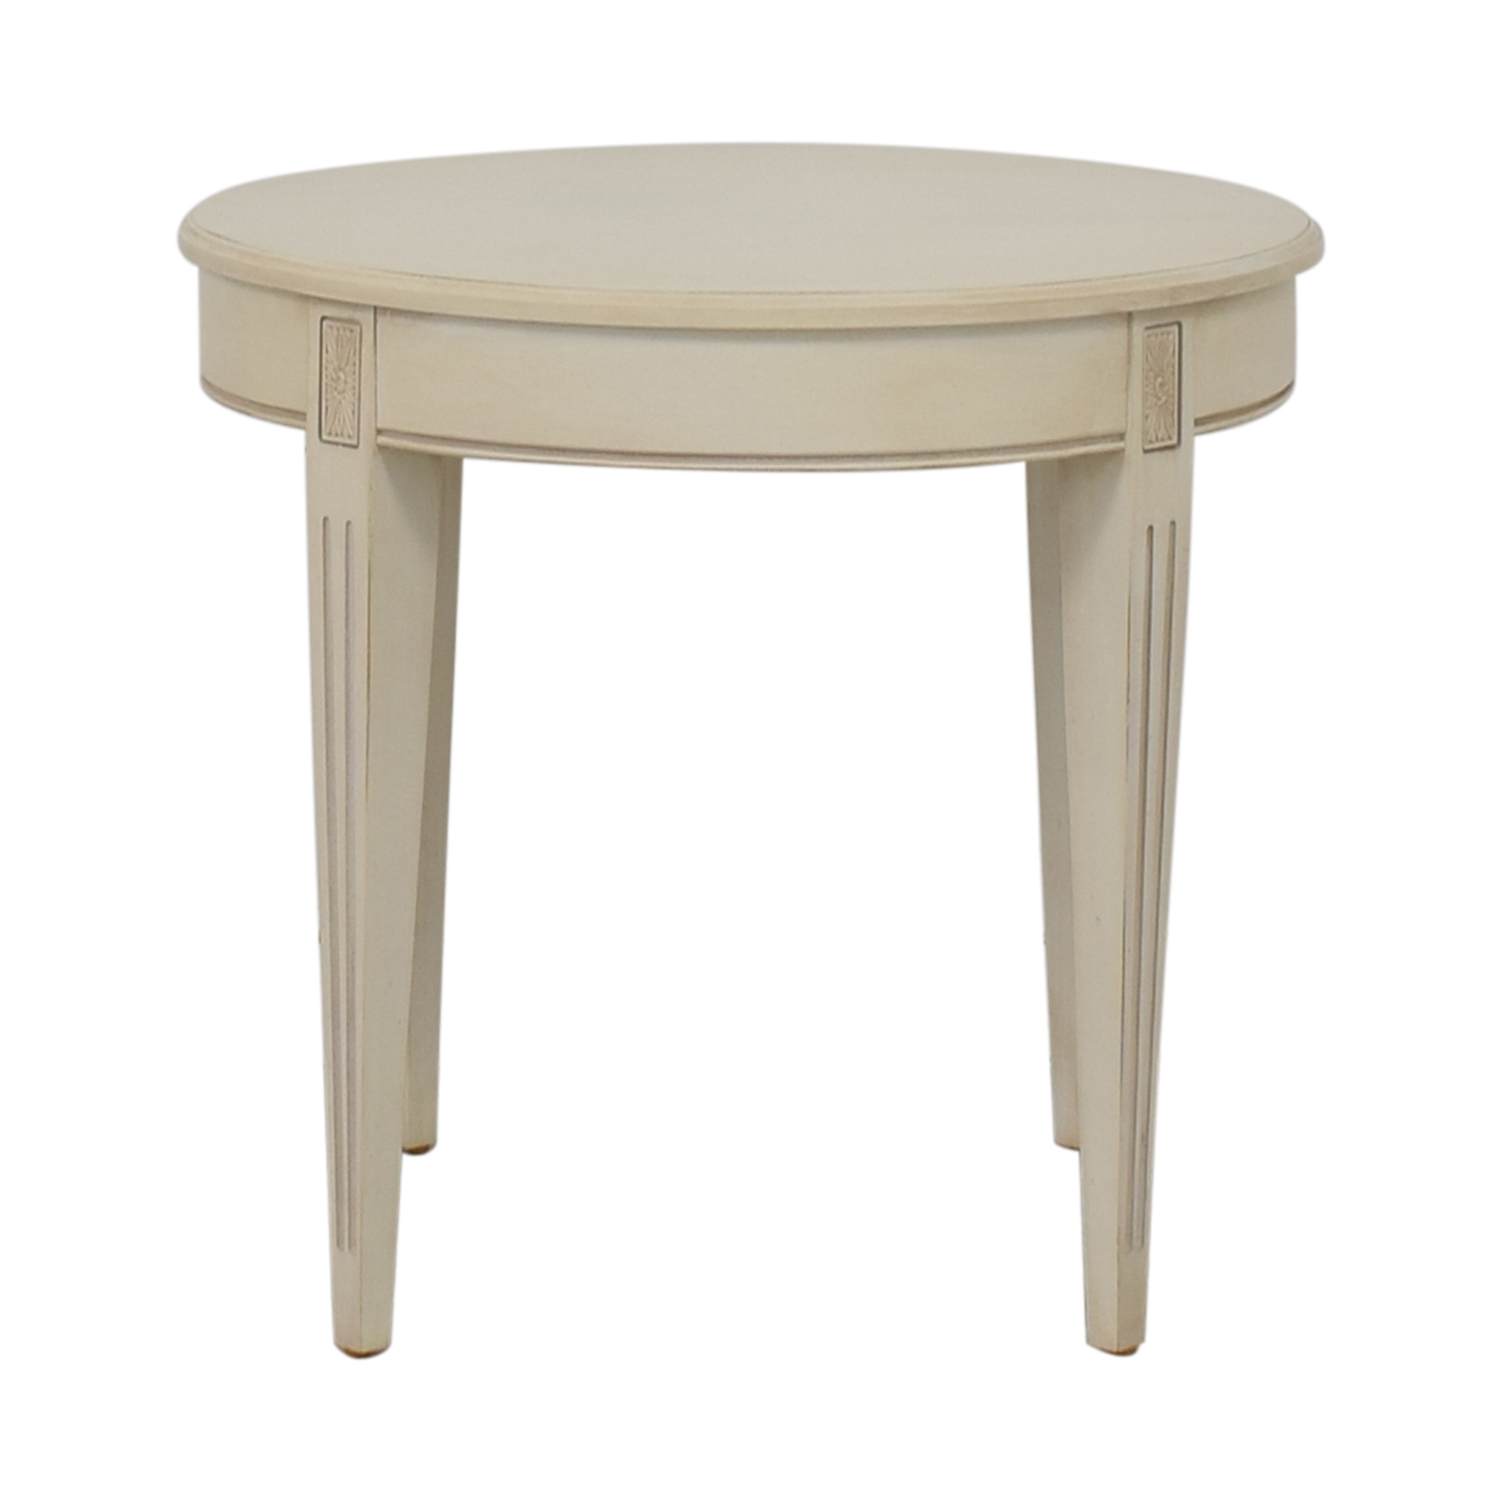 Ethan Allen Ethan Allen Round End Table